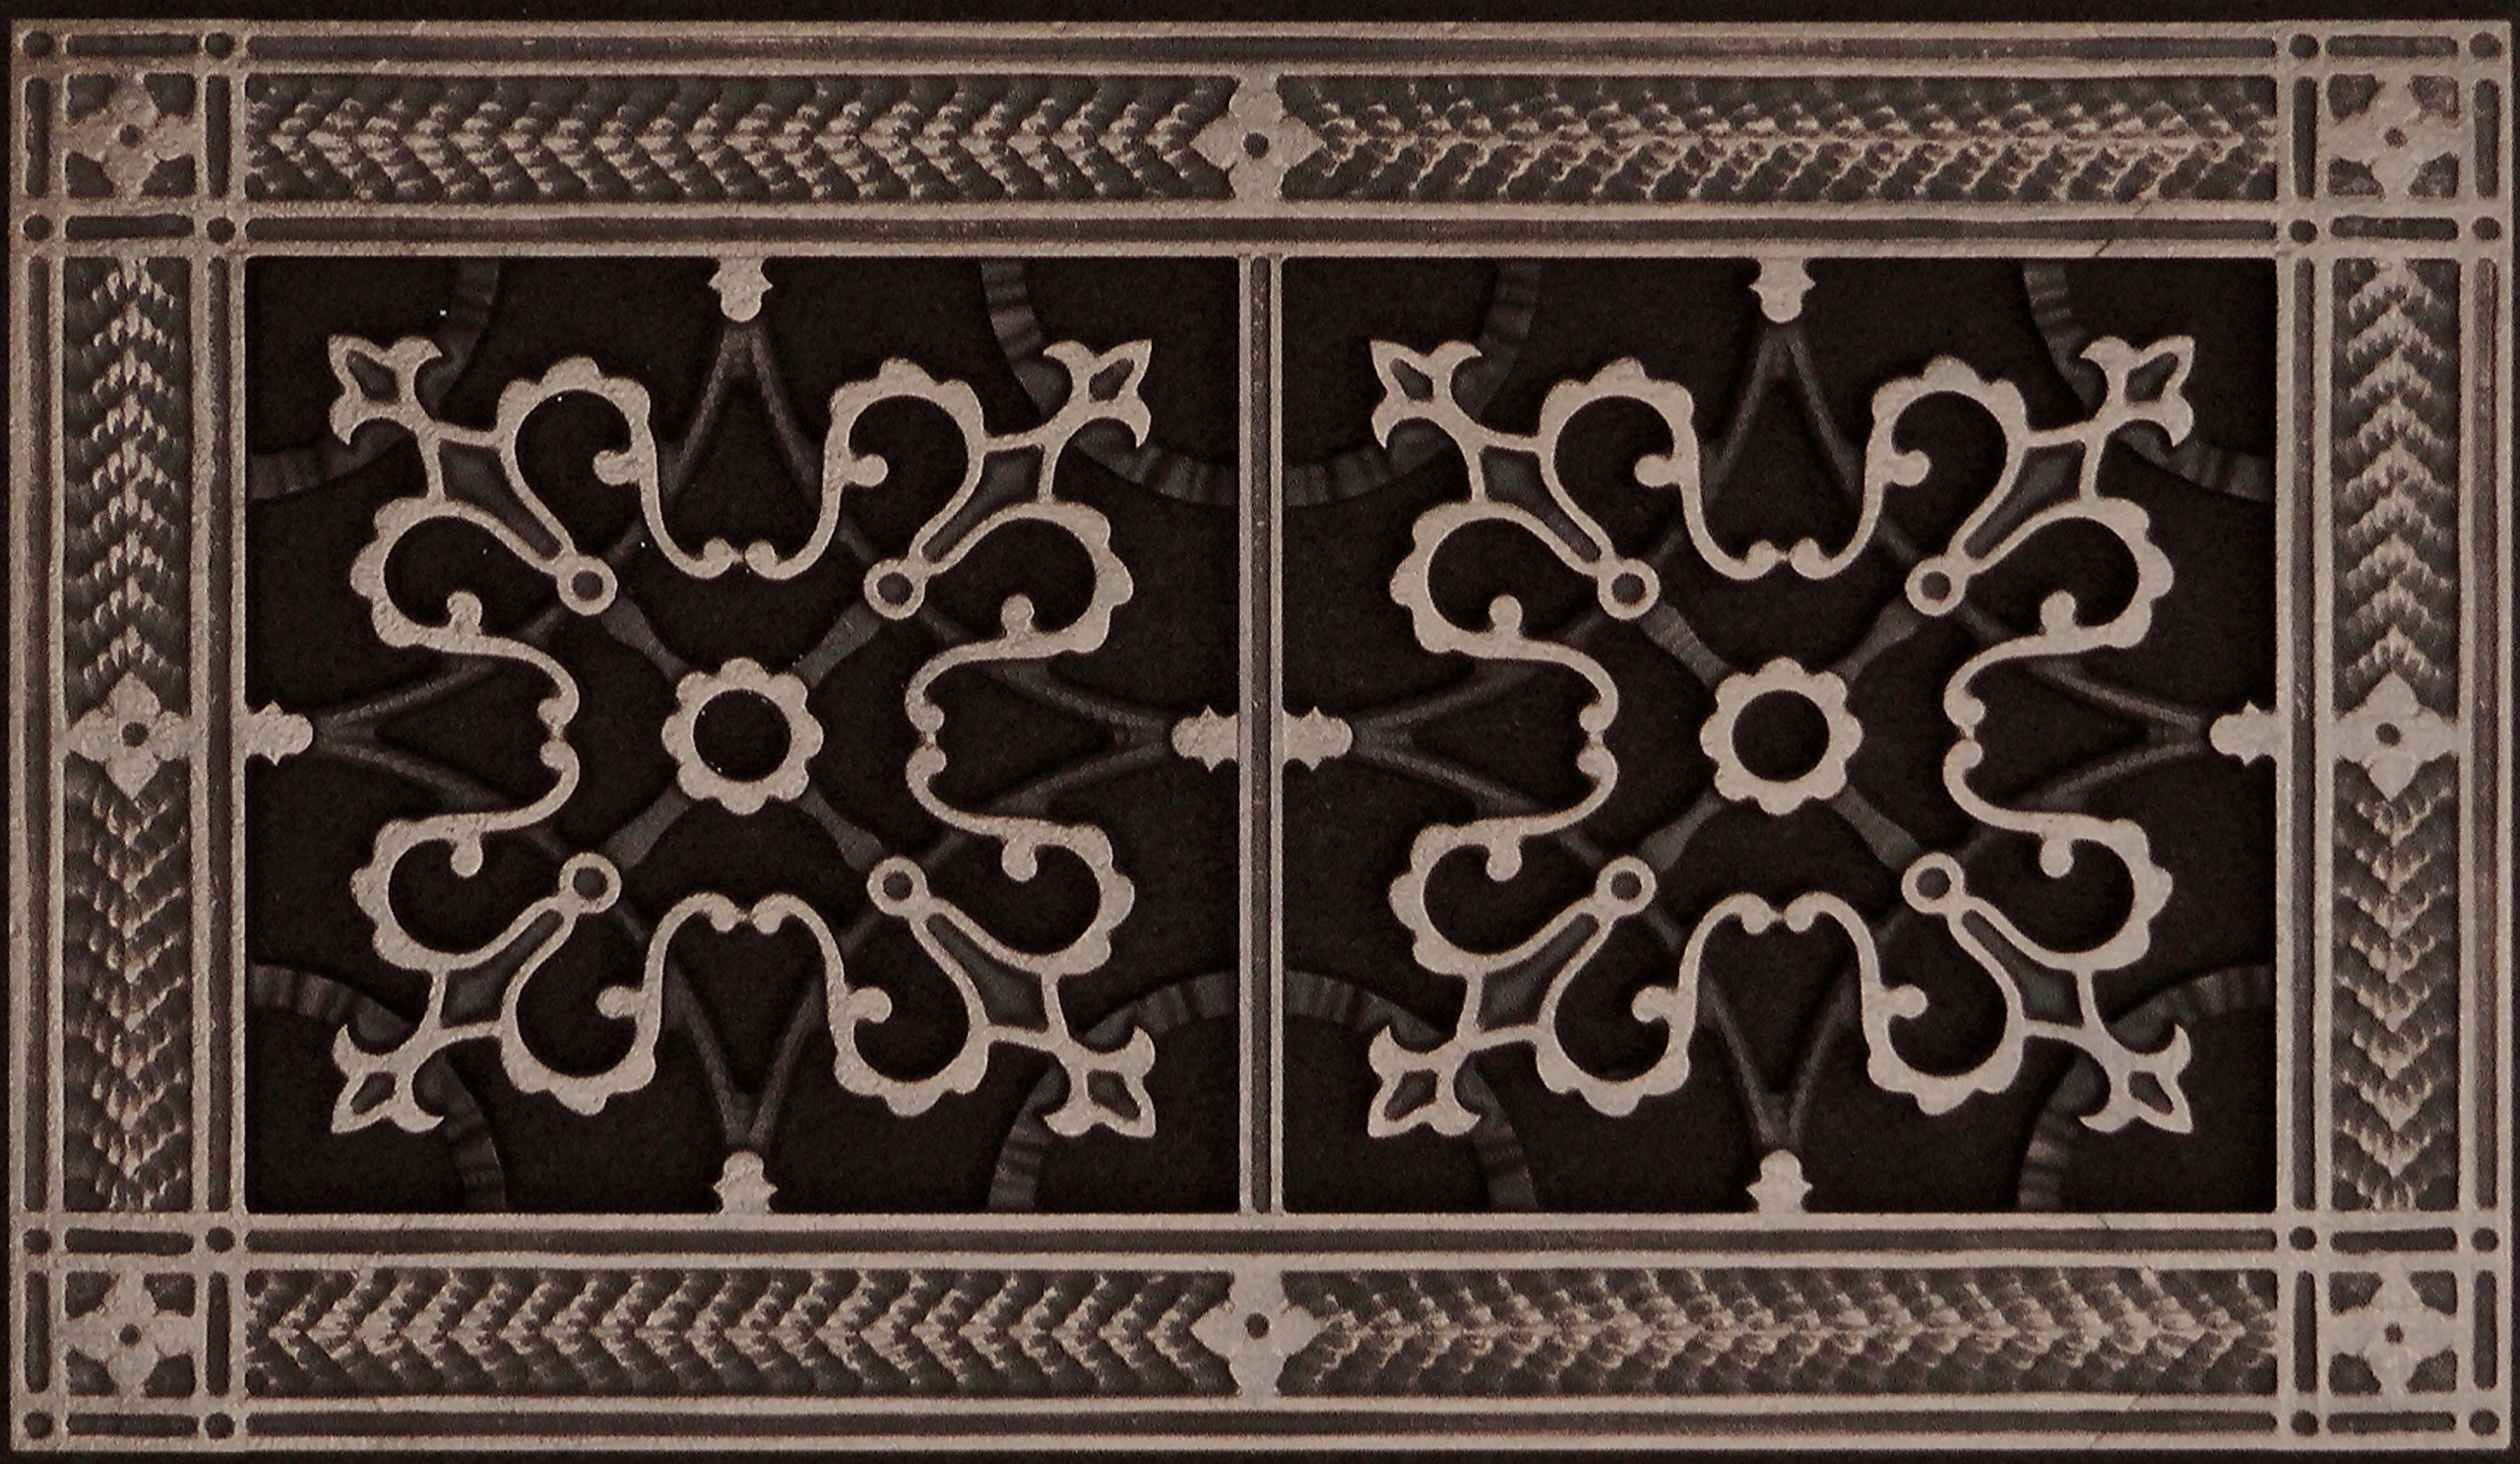 "Decorative Grille, Vent Cover, or Return Register. Made of Urethane Resin to fit over a 6''x12'' duct or opening. Total size of vent is 8""x14''x3/8'', for wall and ceiling grilles (not for floor use)."